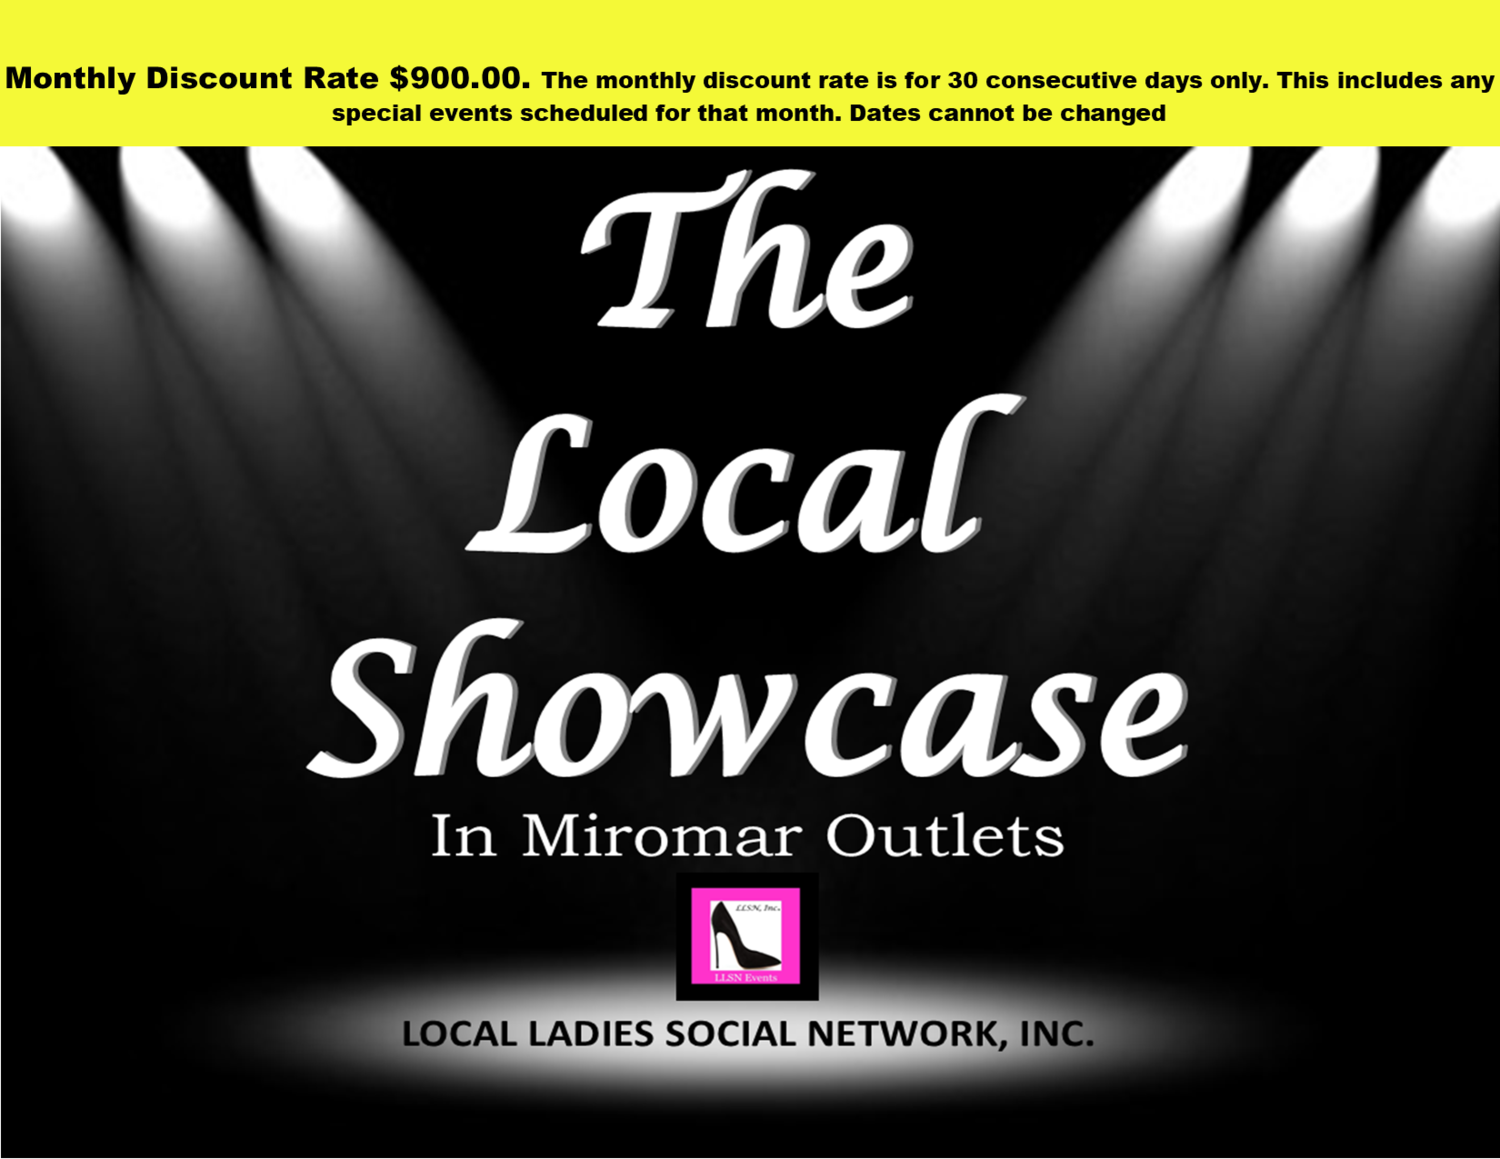 Monthly Discount. Only Approved Vendors may use this payment method for The Local Showcase in Miromar Outlets. Interested vendors please email: LLSN@comcast.net for approval.